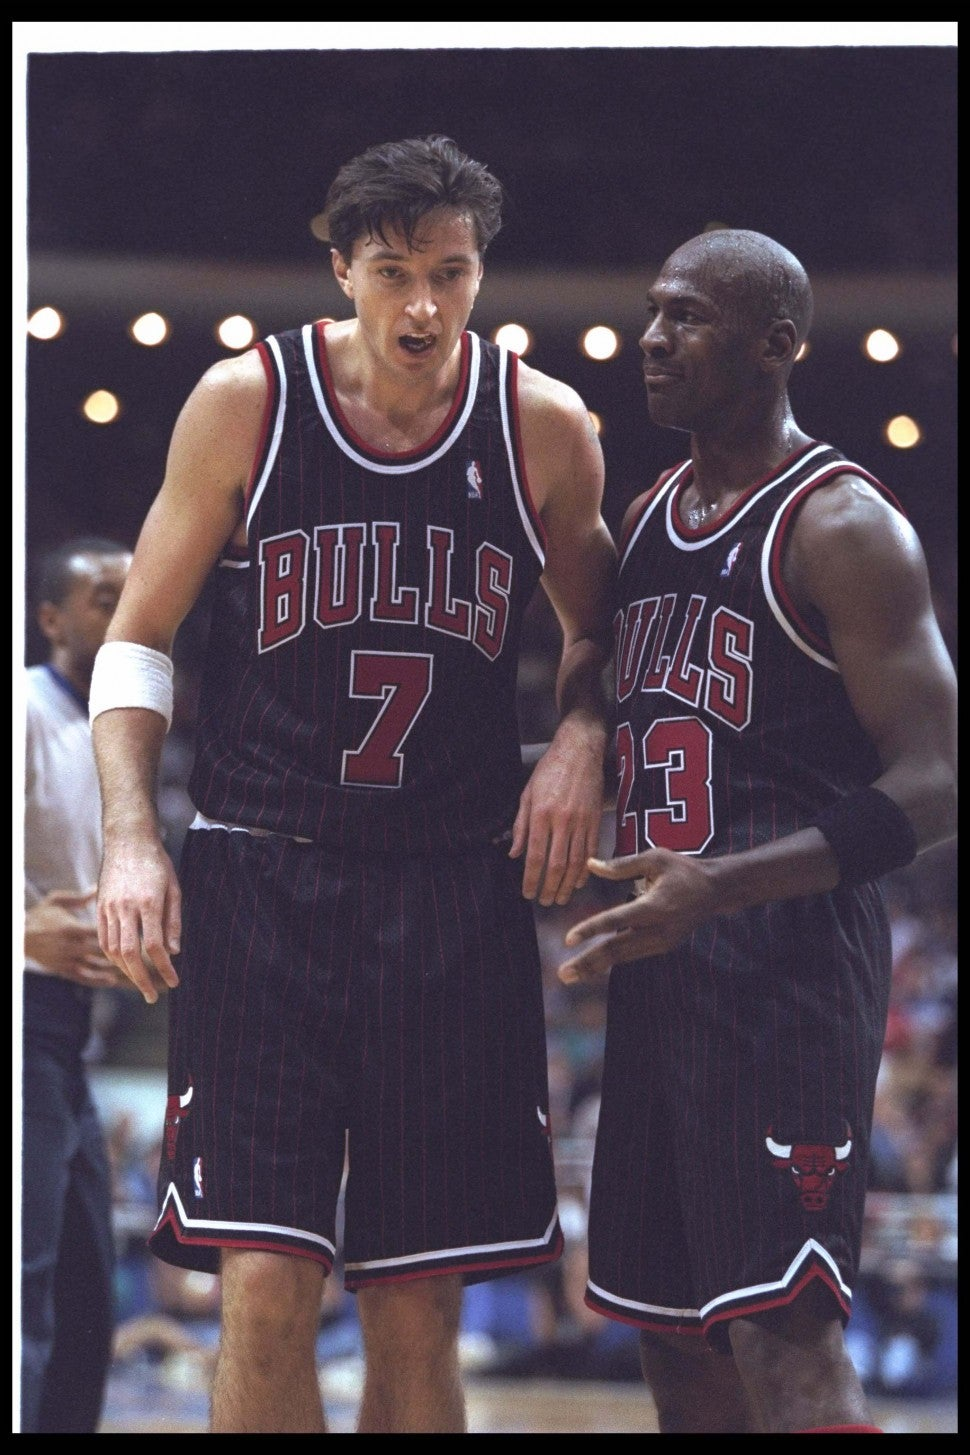 Toni Kukoc (left) and guard Michael Jordan confer during a game against the Orlando Magic at the Orlando Arena in Orlando, Florida.